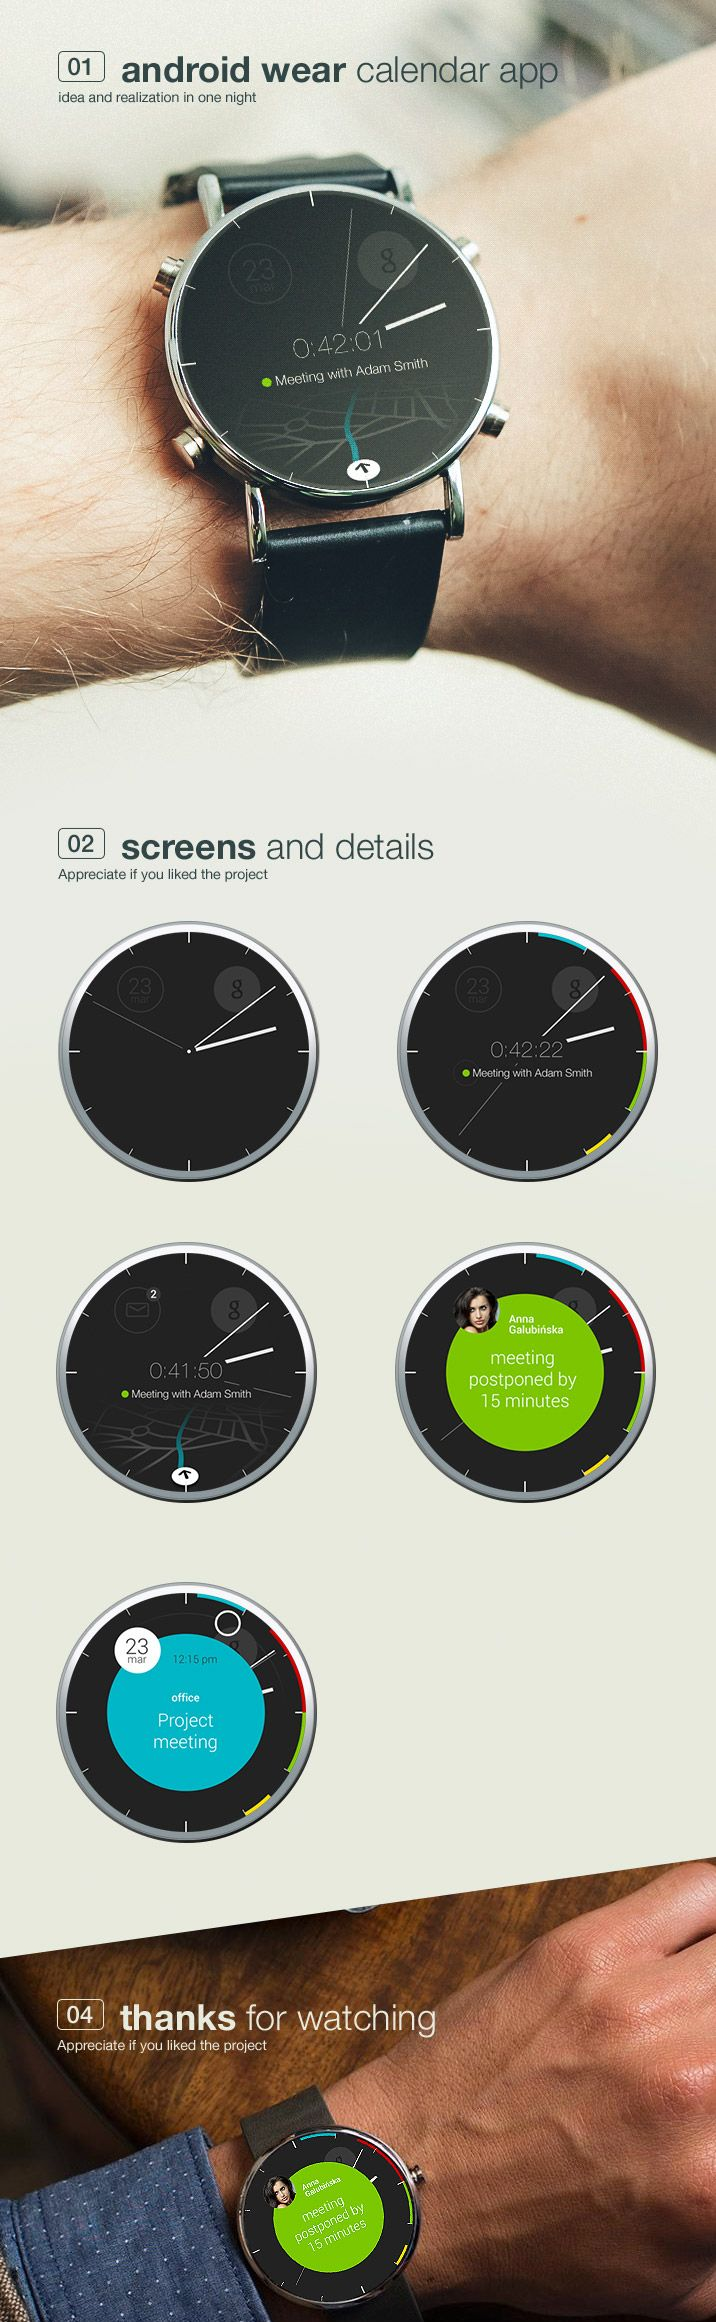 Android Wear http://www.cssdesignawards.com/articles/23-smartwatch-ui-designs-concepts/114/